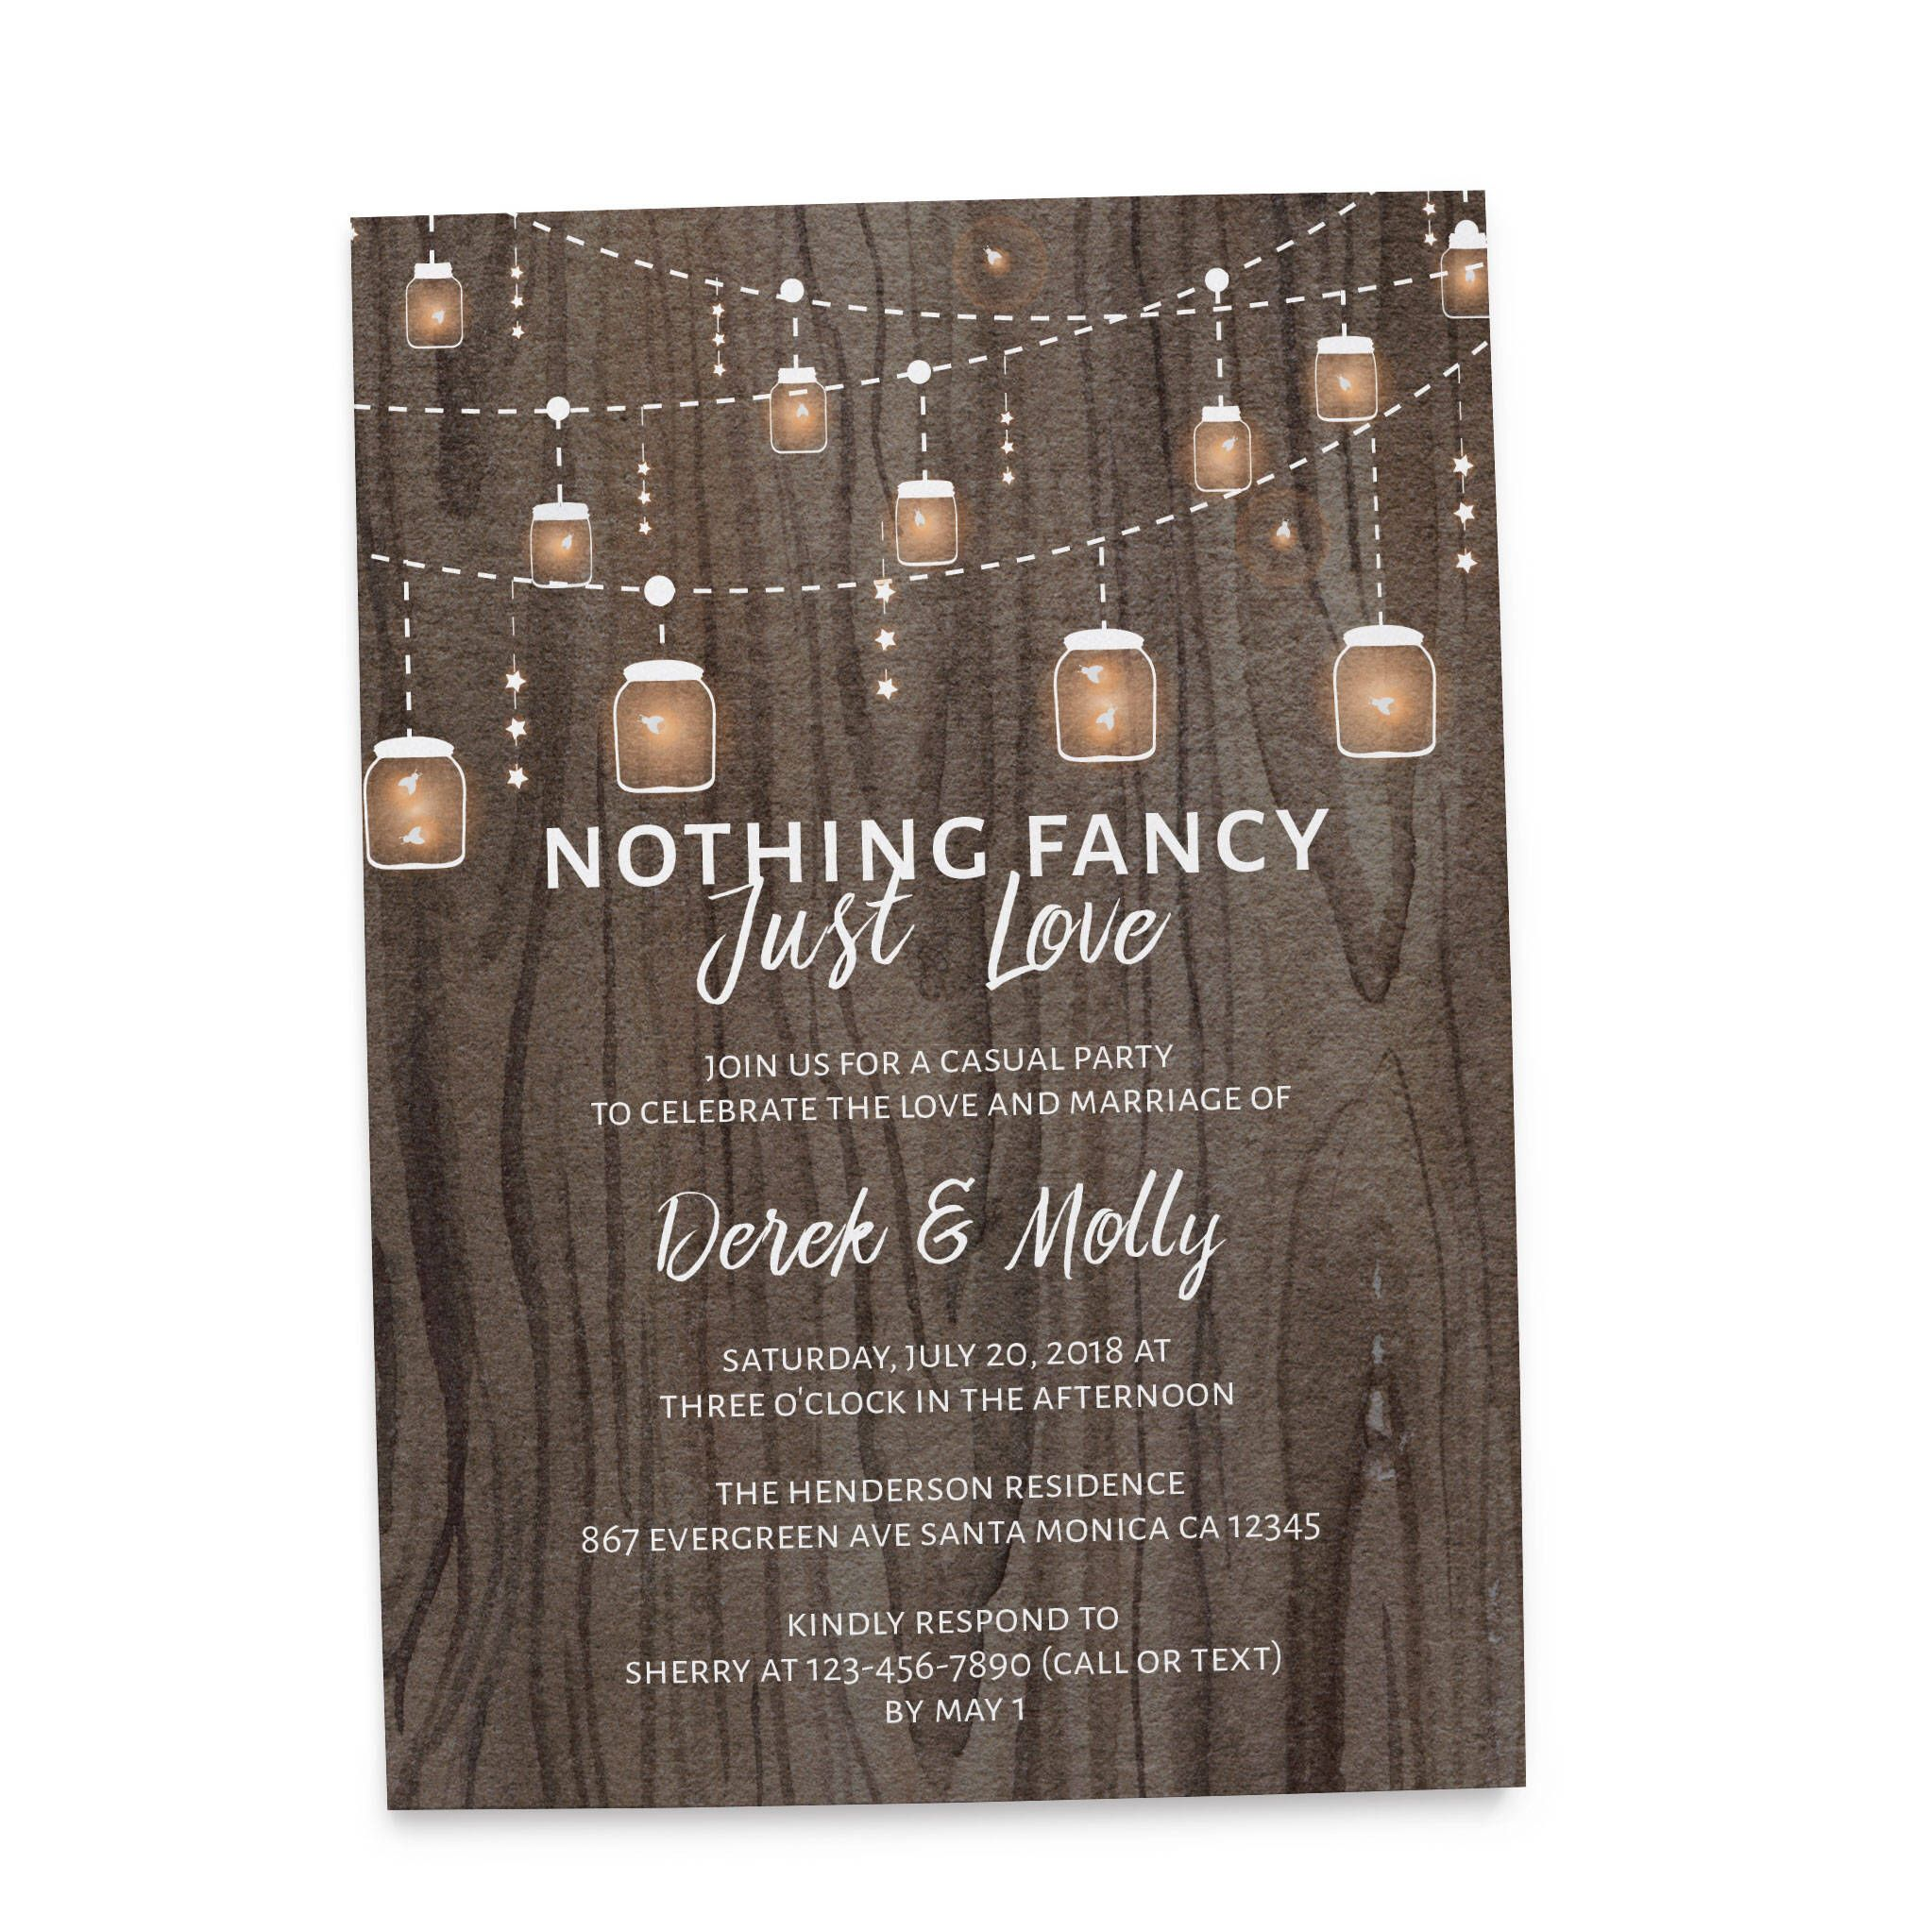 Rustic Wedding Reception Invitation That You Will Love Nothing Fancy Just